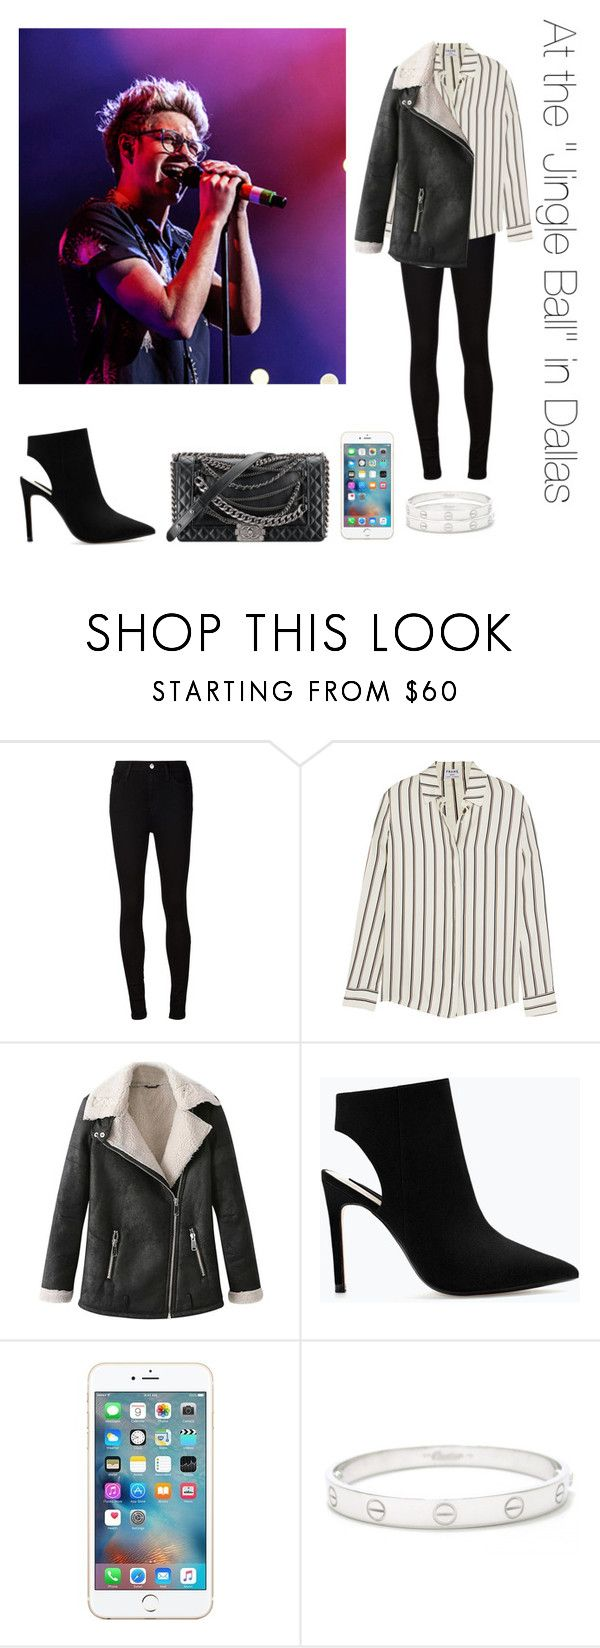 """""""At the """"Jingle Ball"""" in Dallas"""" by thetrendpear-eleanor ❤ liked on Polyvore featuring AG Adriano Goldschmied, Frame Denim, Chanel, Zara and Cartier"""